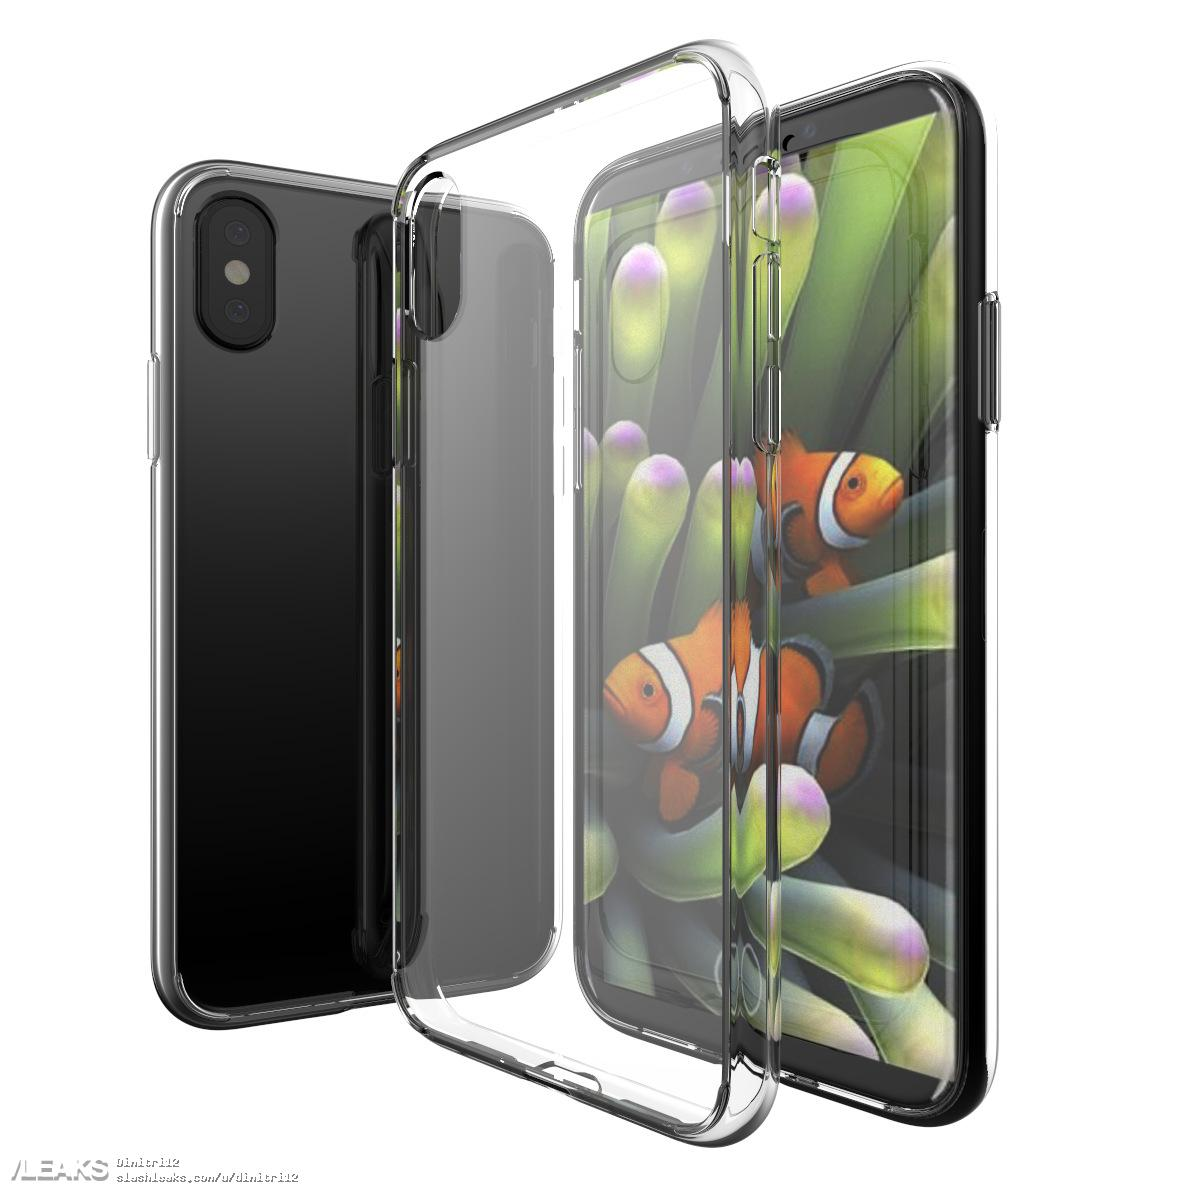 IPhone8 case leak 02